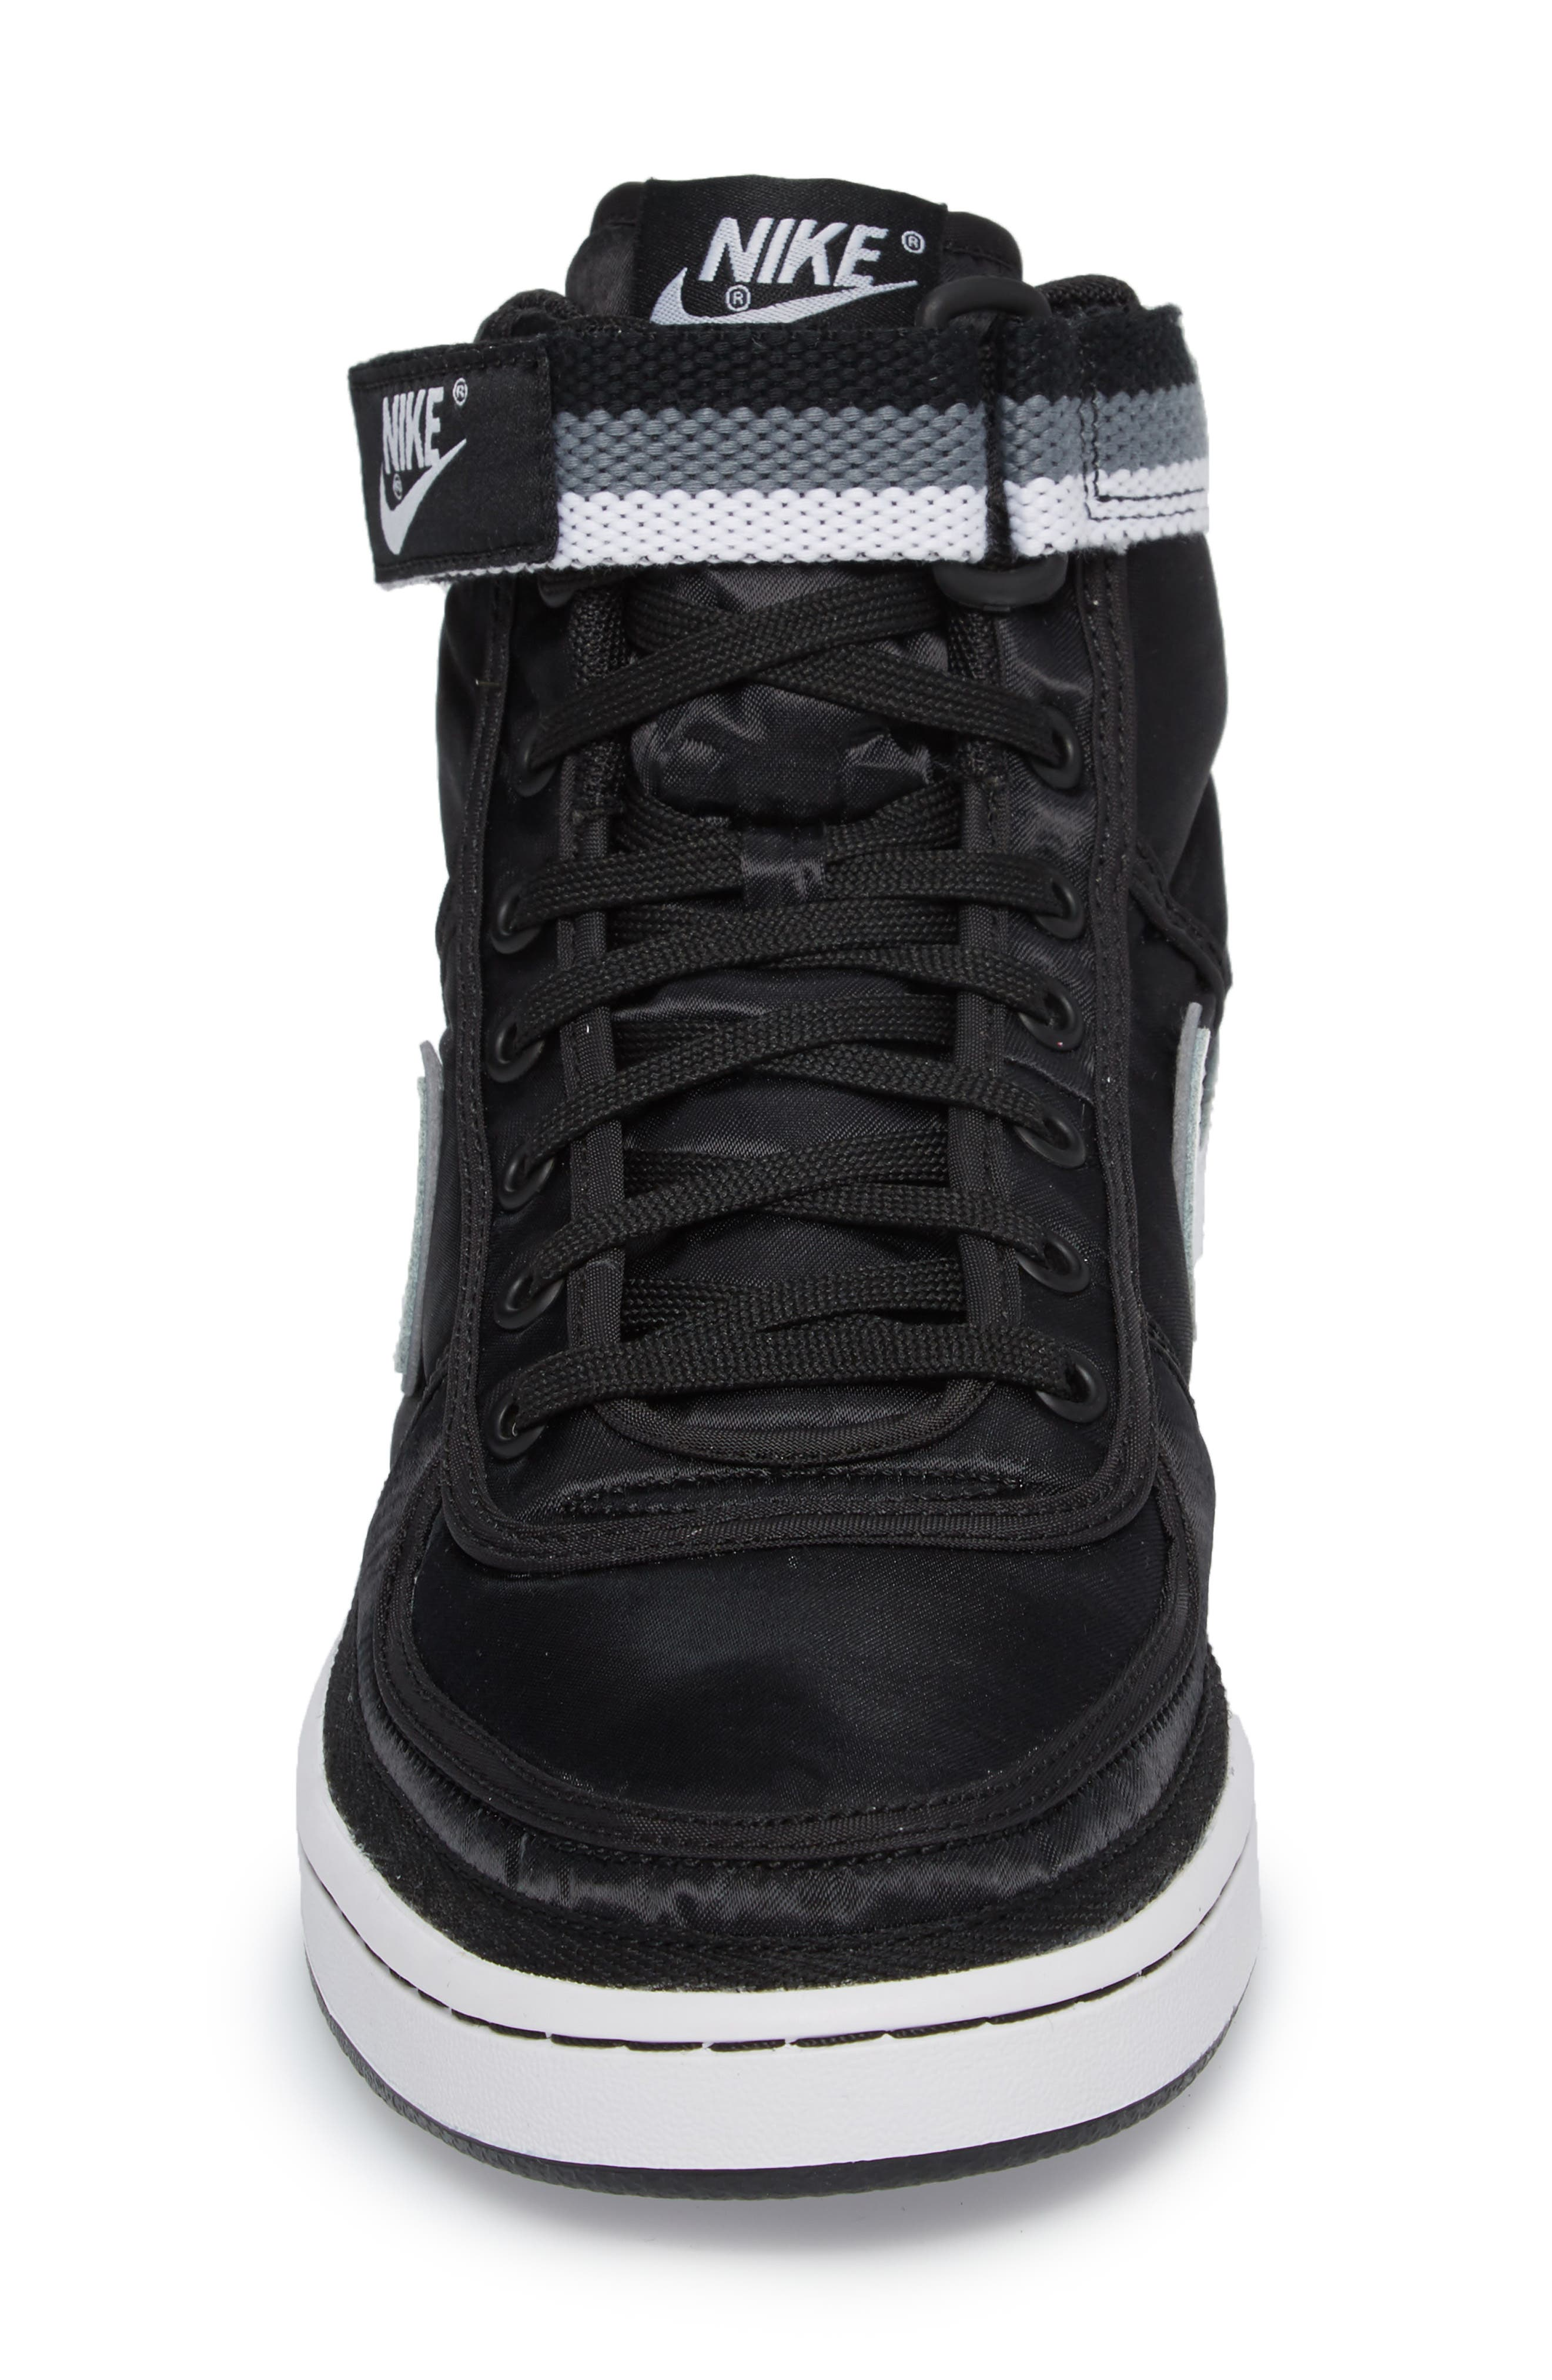 NIKE,                             Vandal High Supreme High Top Sneaker,                             Alternate thumbnail 4, color,                             001